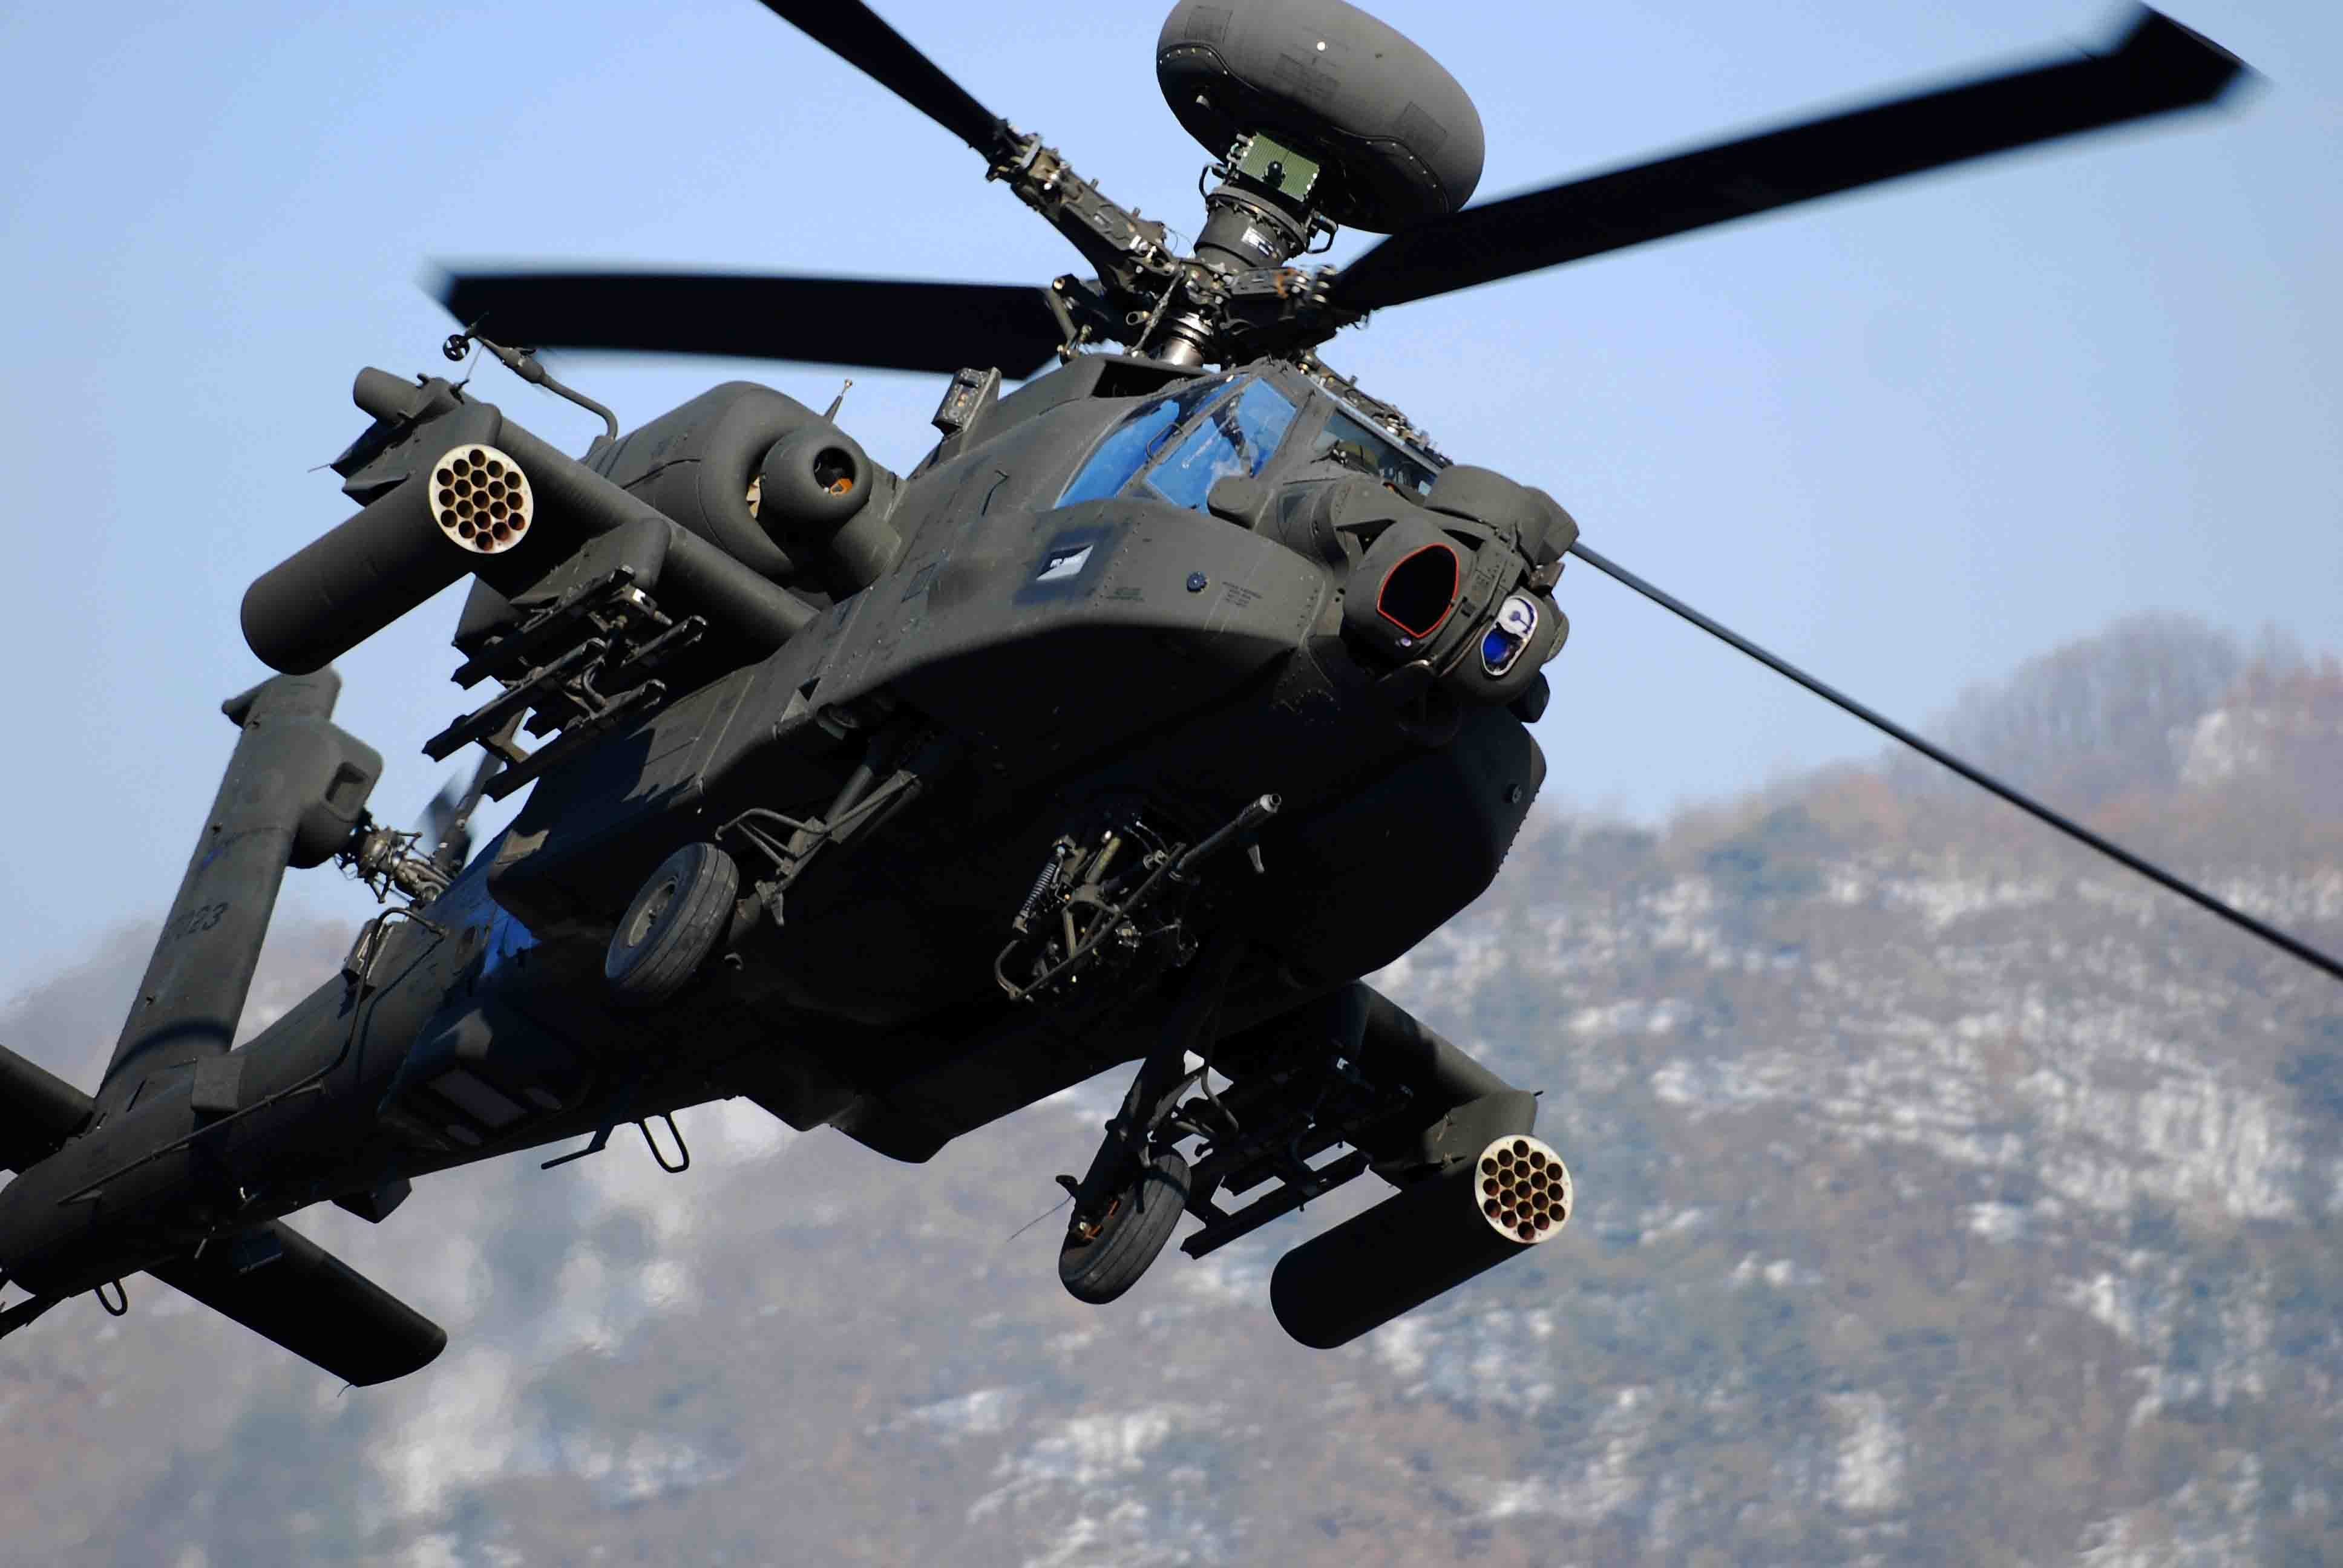 AH 64 APACHE attack helicopter army military weapon 39 wallpaper 3872x2592